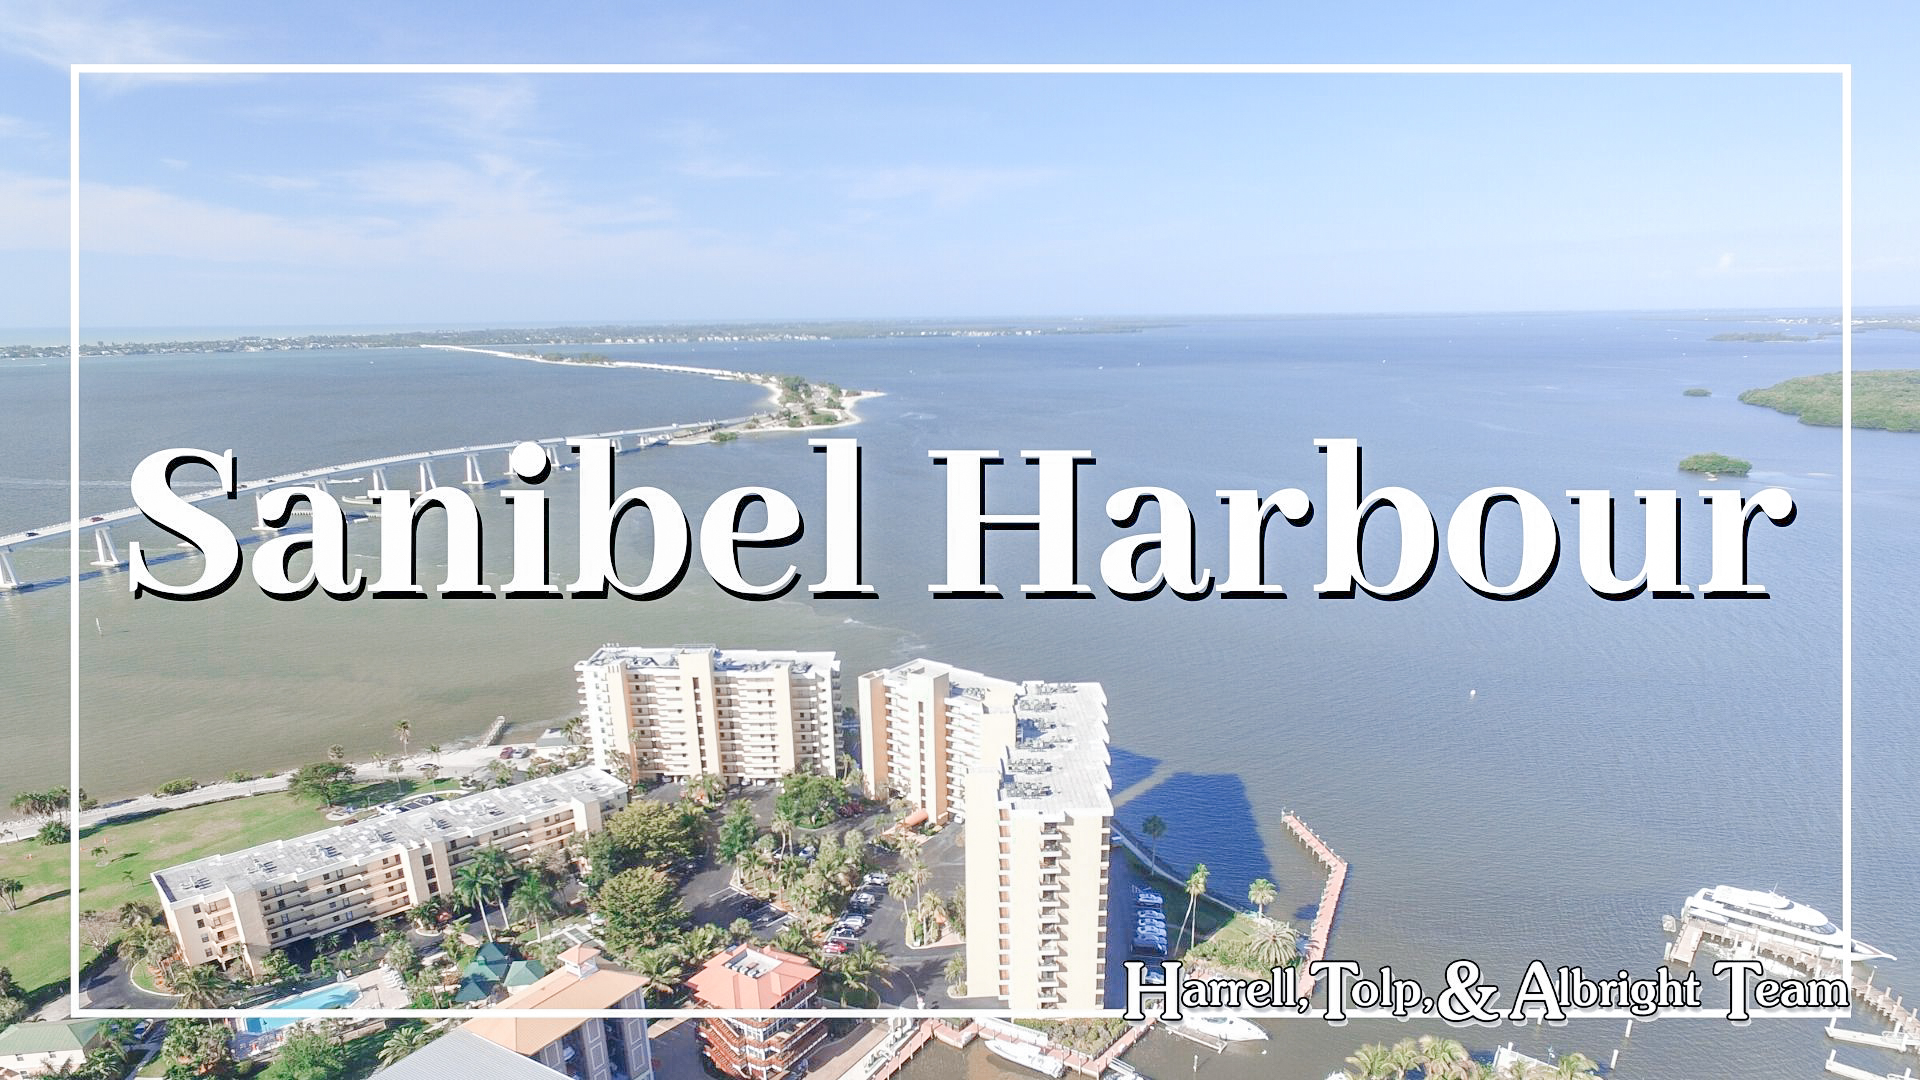 Sanibel Harbour